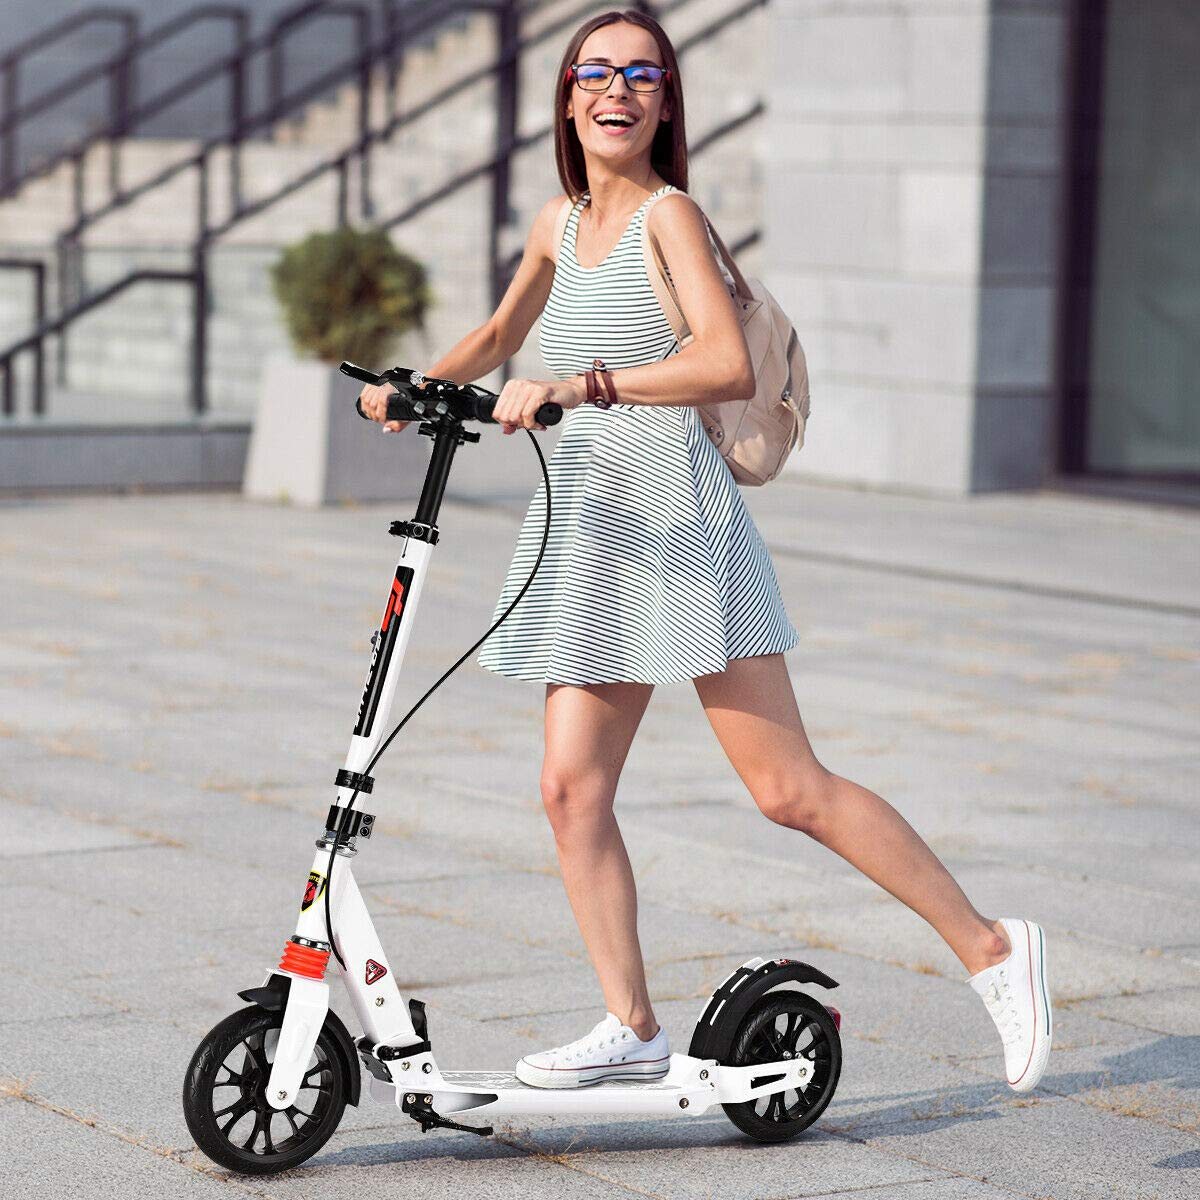 Goplus Fodlable Kickscooter for heavy adults